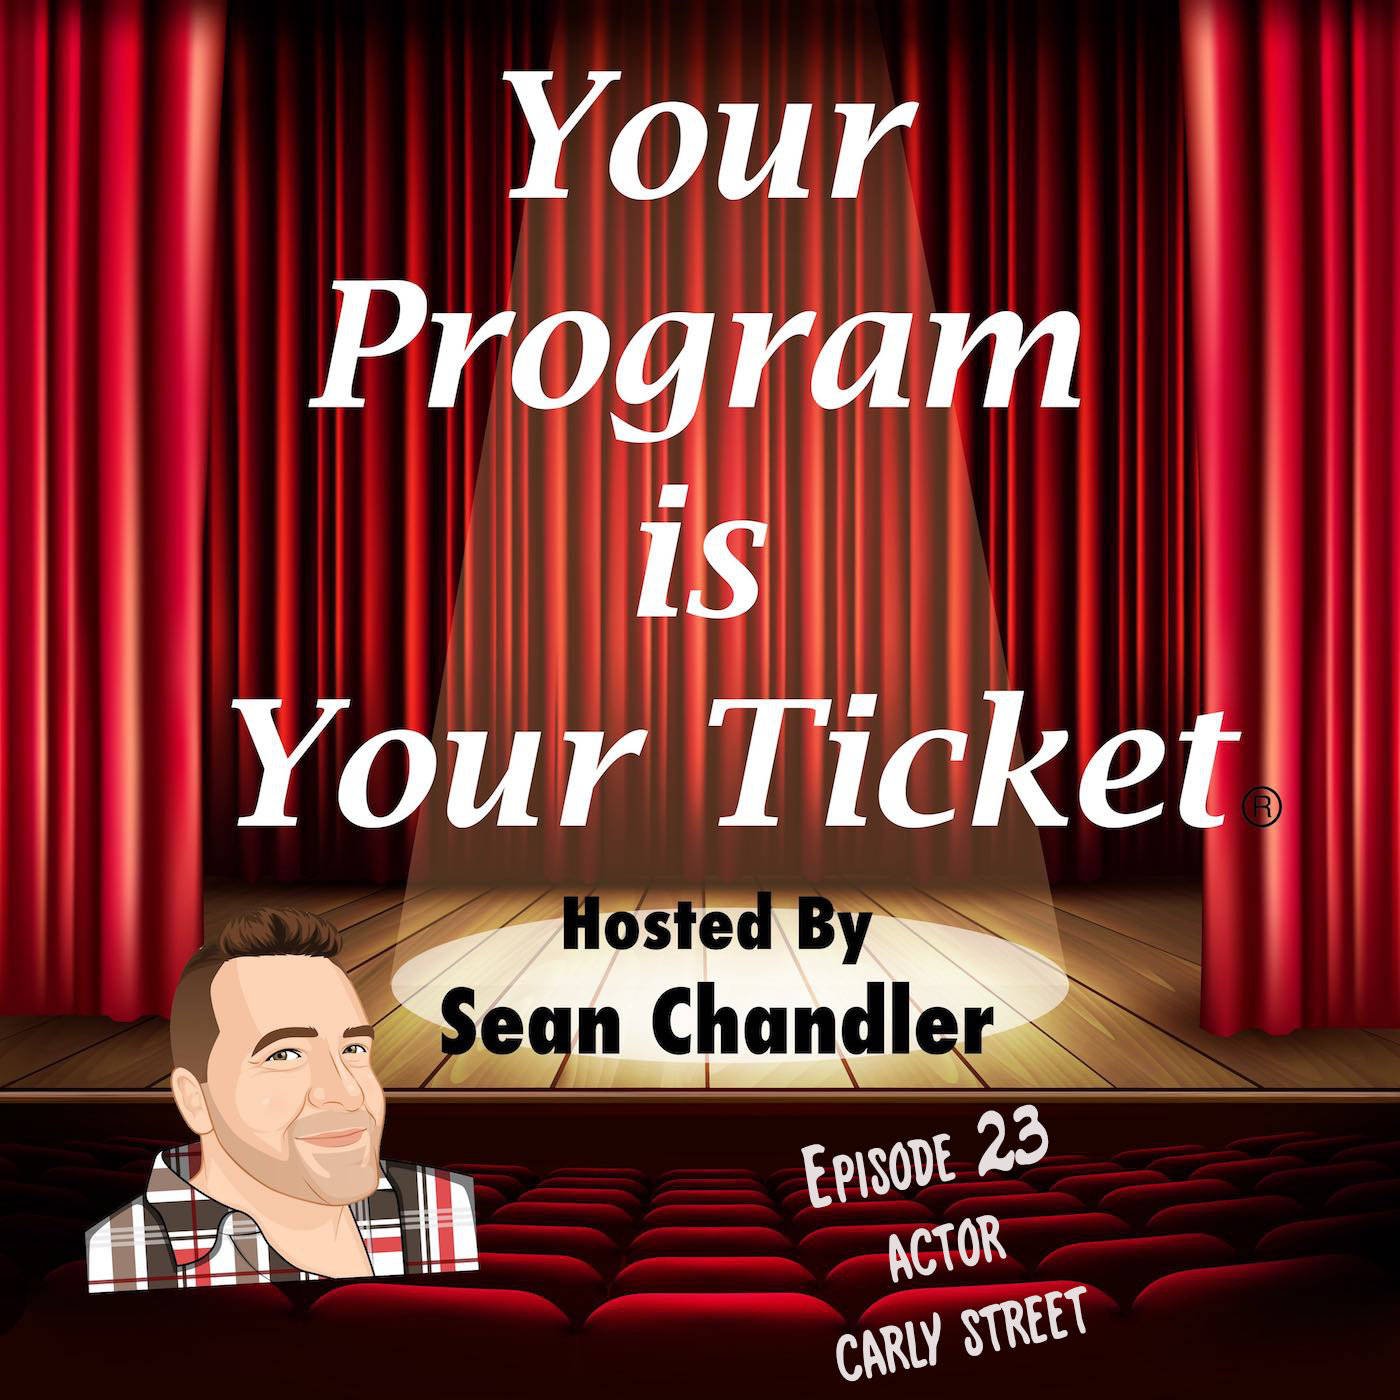 Ep 23 Your Program Is Your Ticket Logo Registered Trademark